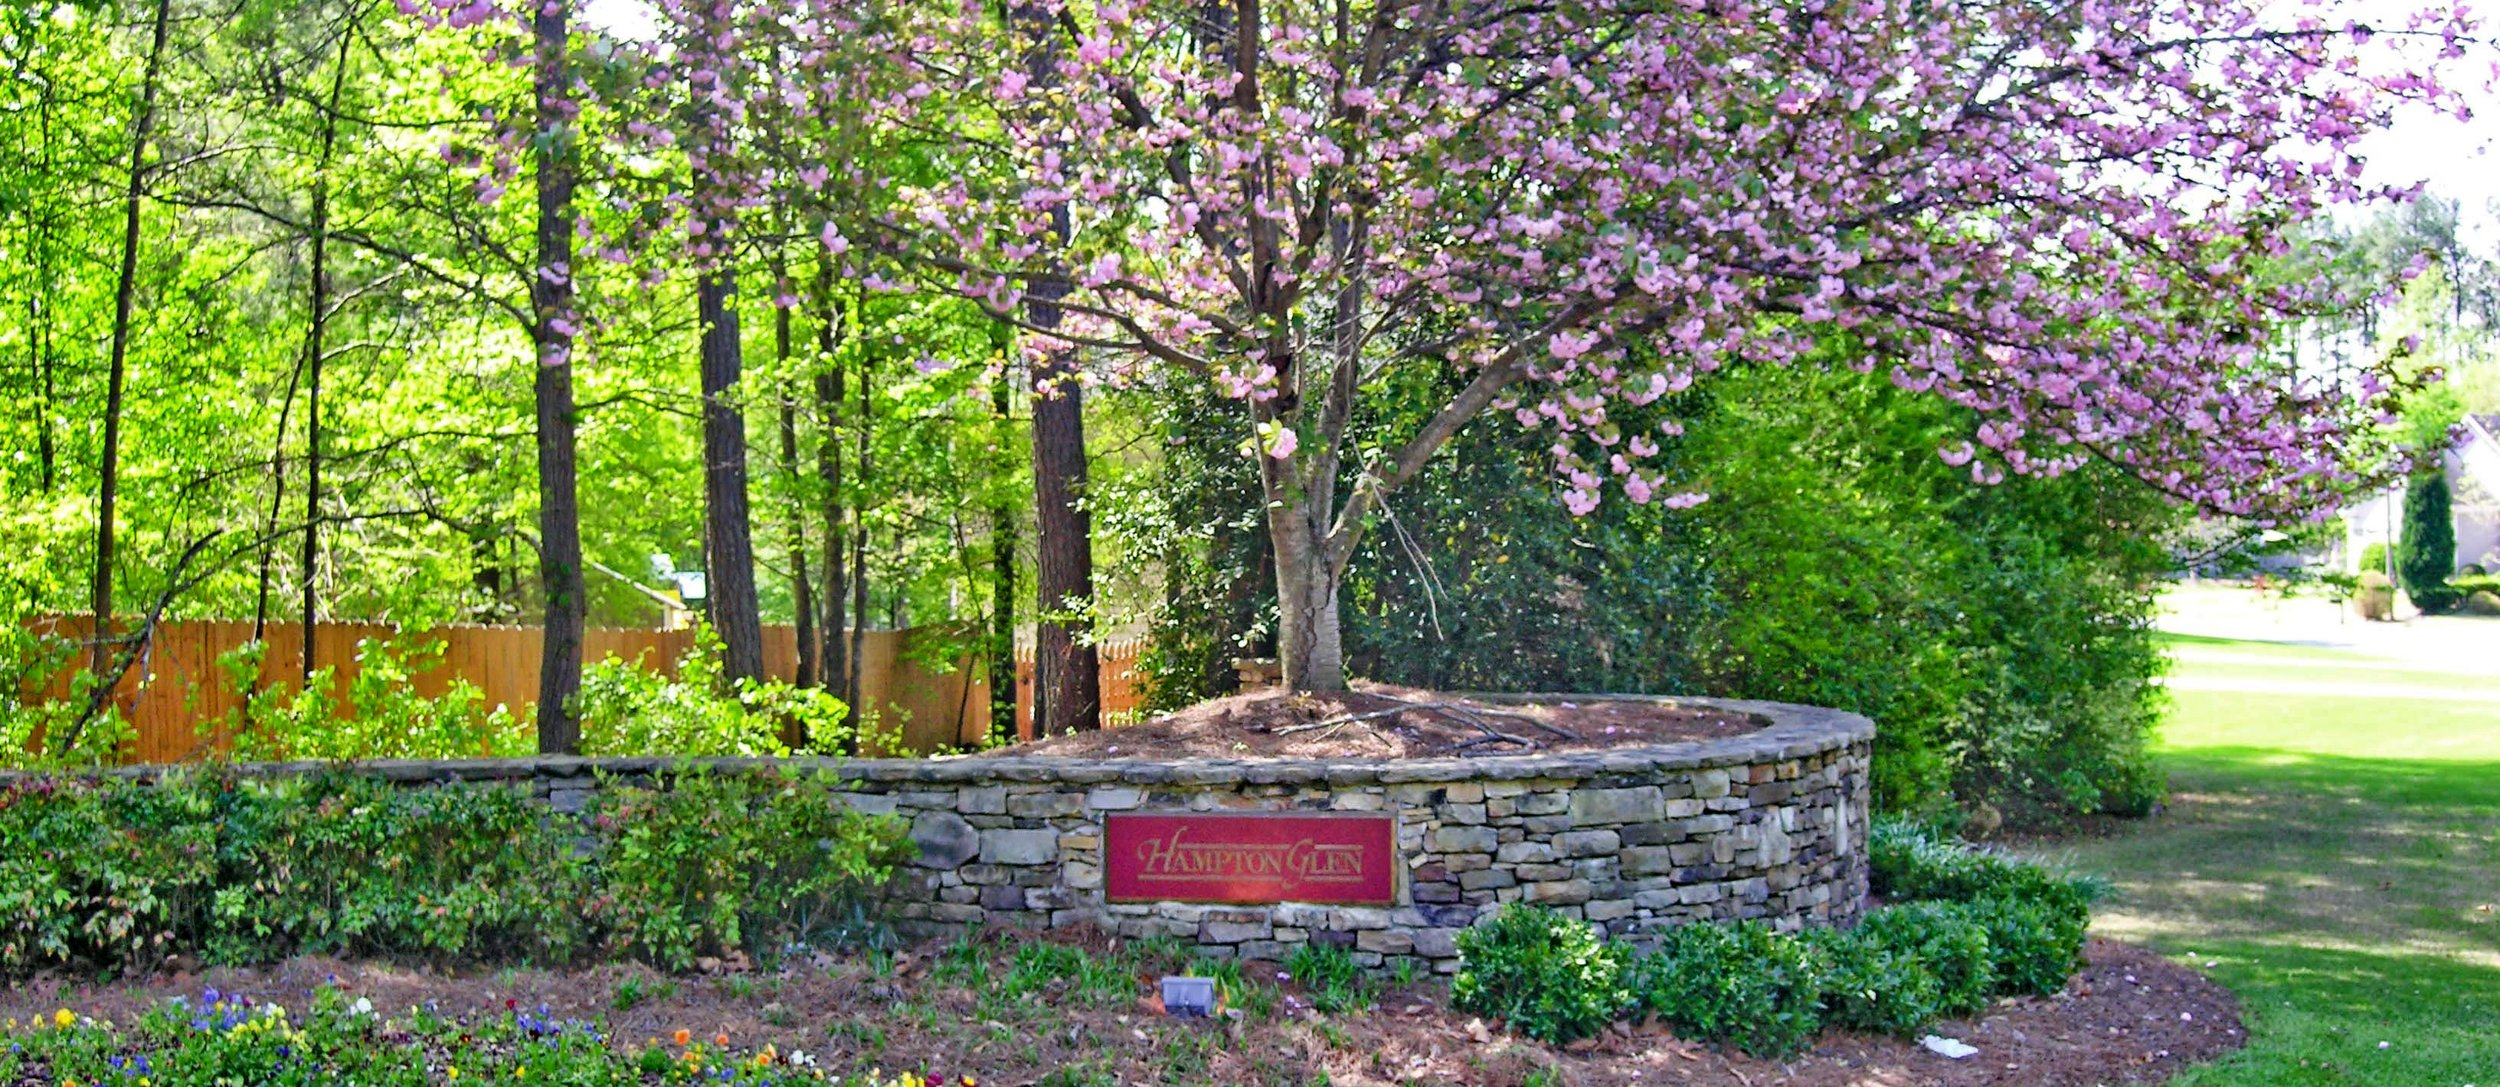 History - Hampton Glen is a small community of friendly neighbors, consisting of 181 homes. The subdivision was built by Traton Homes between 1989 and 1991. Hampton Glen offers close proximity to downtown Marietta and is a short drive to I-75 and the Town Center Mall. We are located just southwest of the Kennesaw Mountain Battlefield in Marietta, GA.